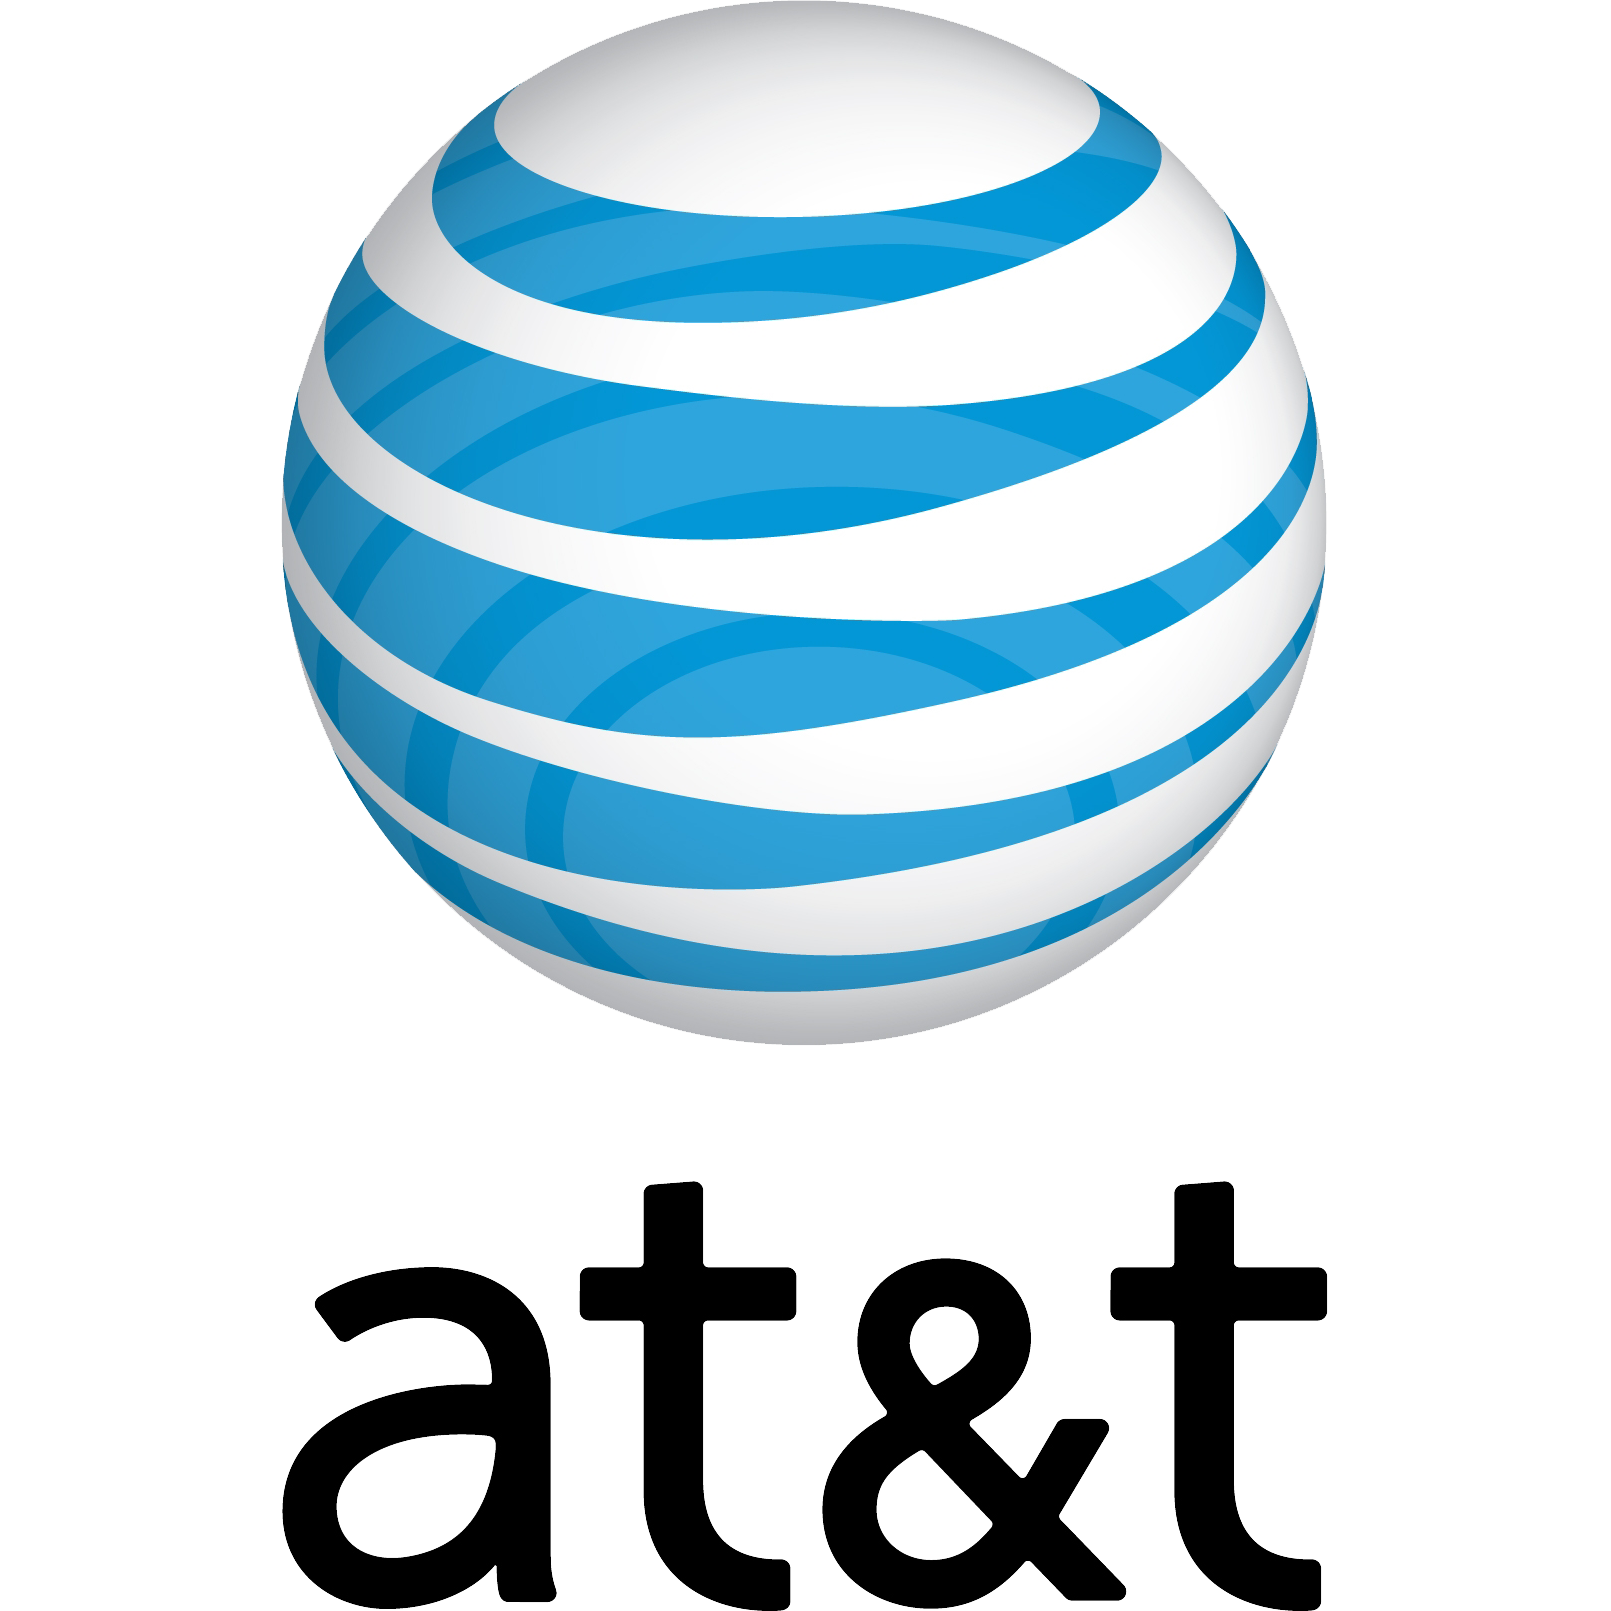 AT&T Implements Anti-Piracy Termination Policy for Internet Service